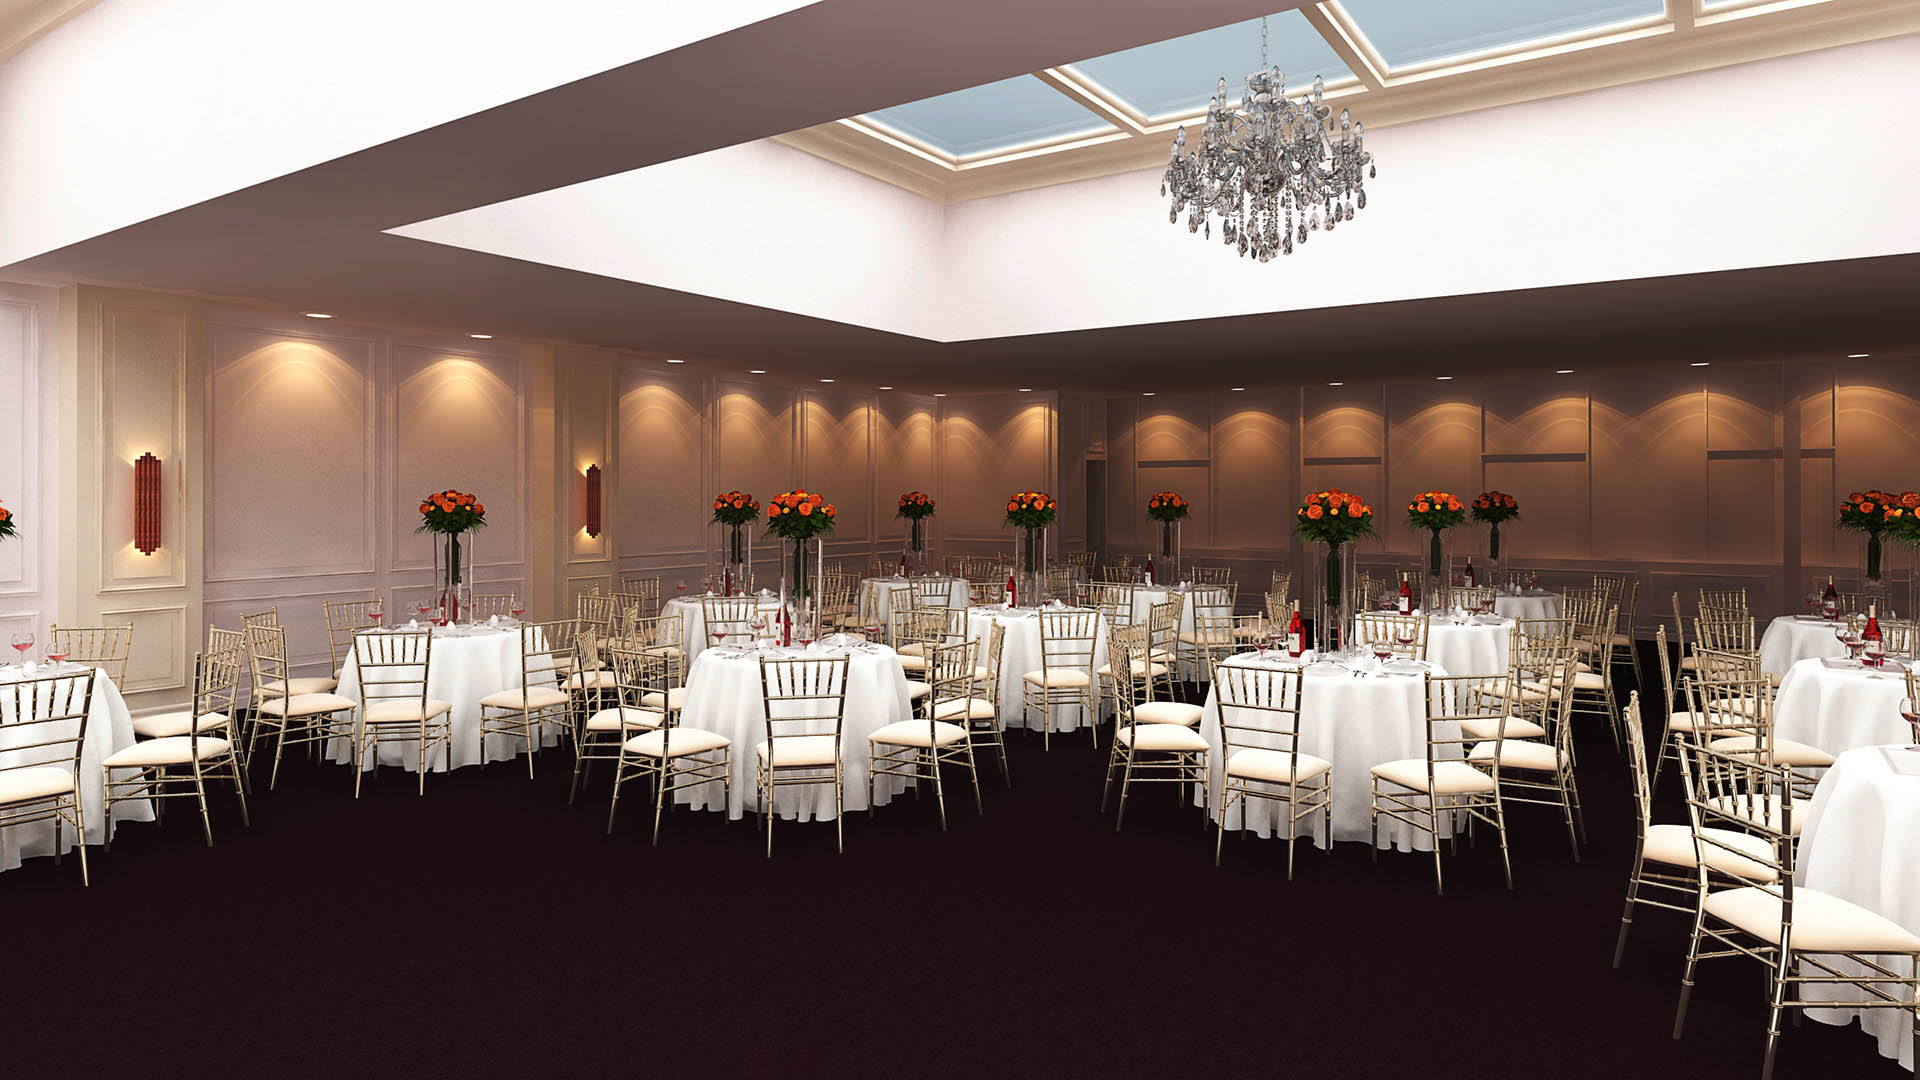 silver-pearl-wedding-venue-render-1.jpg